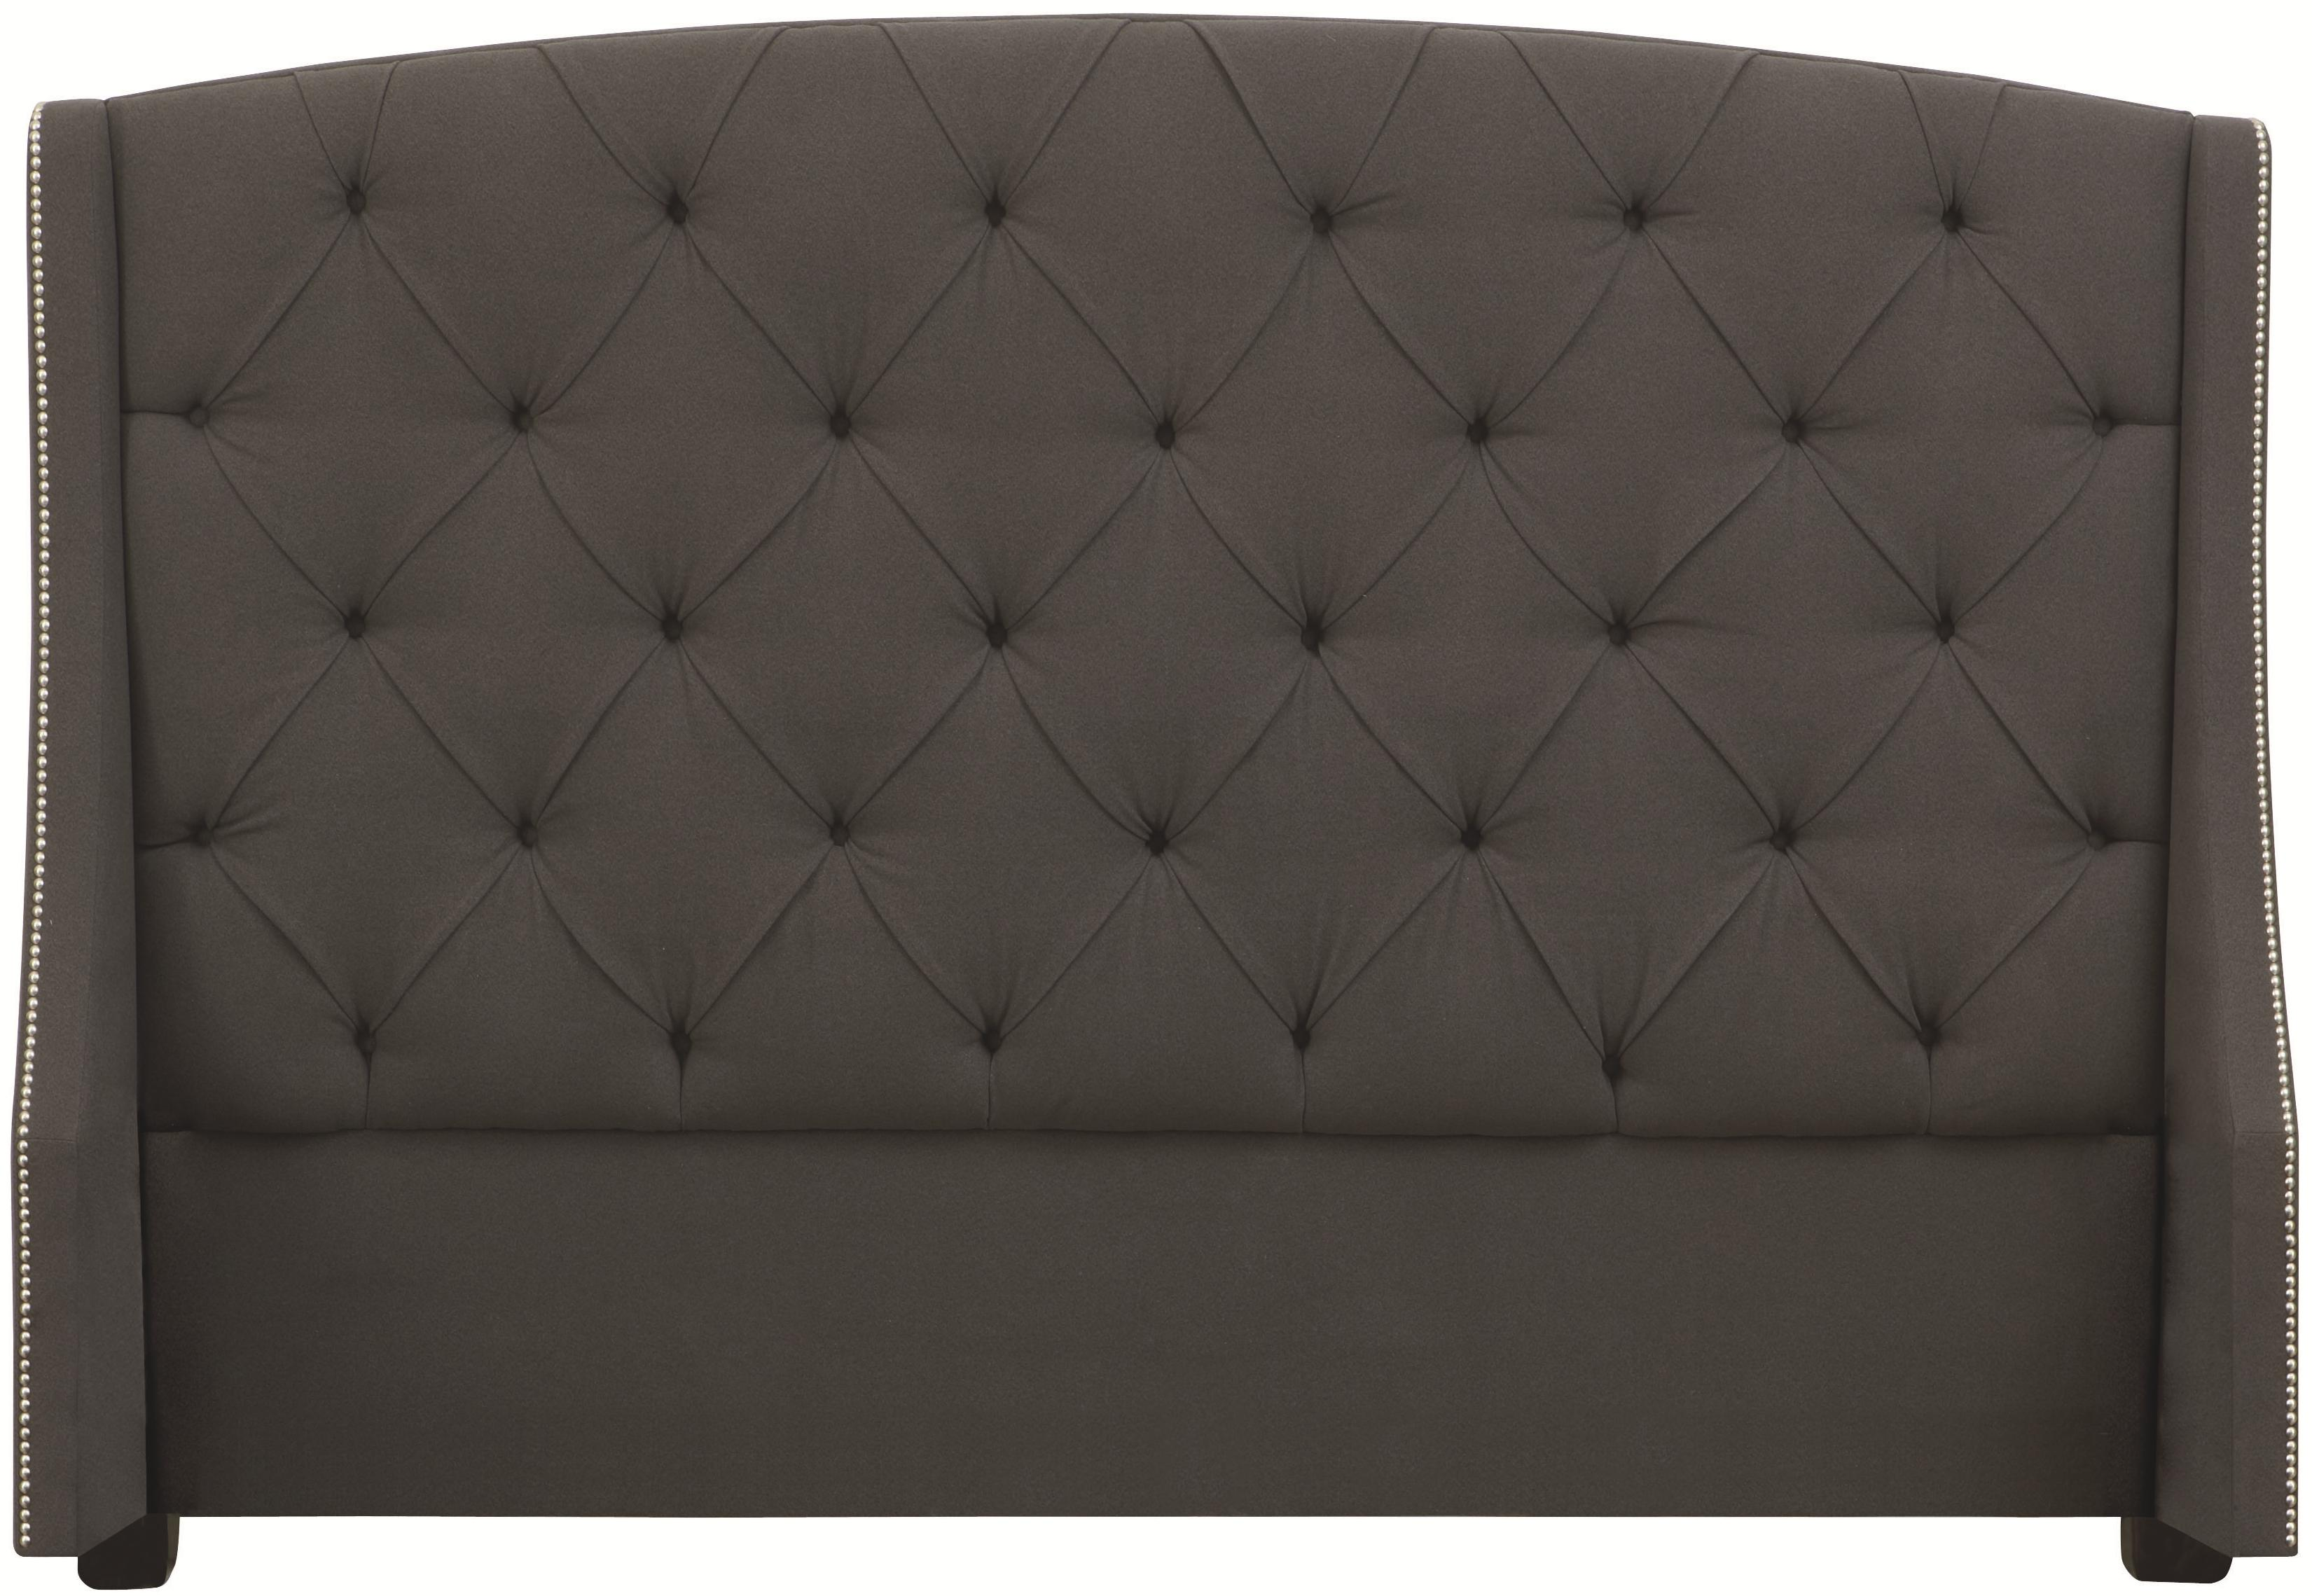 Interiors - Beds King Jordan Button-Tufted Wing Headboard by Bernhardt at Baer's Furniture